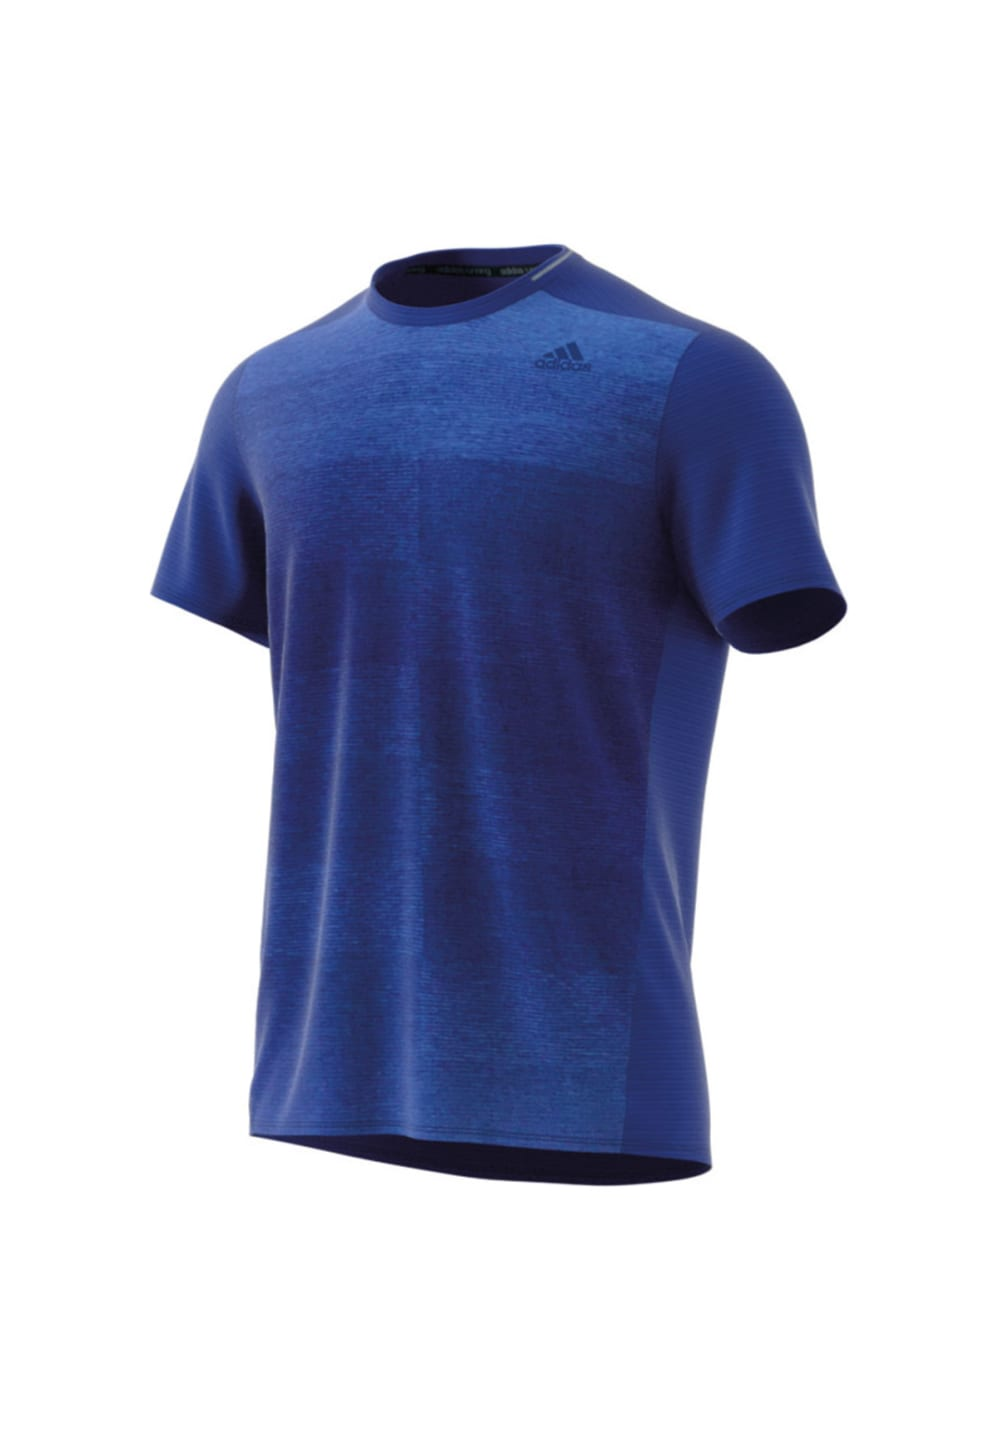 Adidas Supernova Short Sleeve Hommes Maillot course